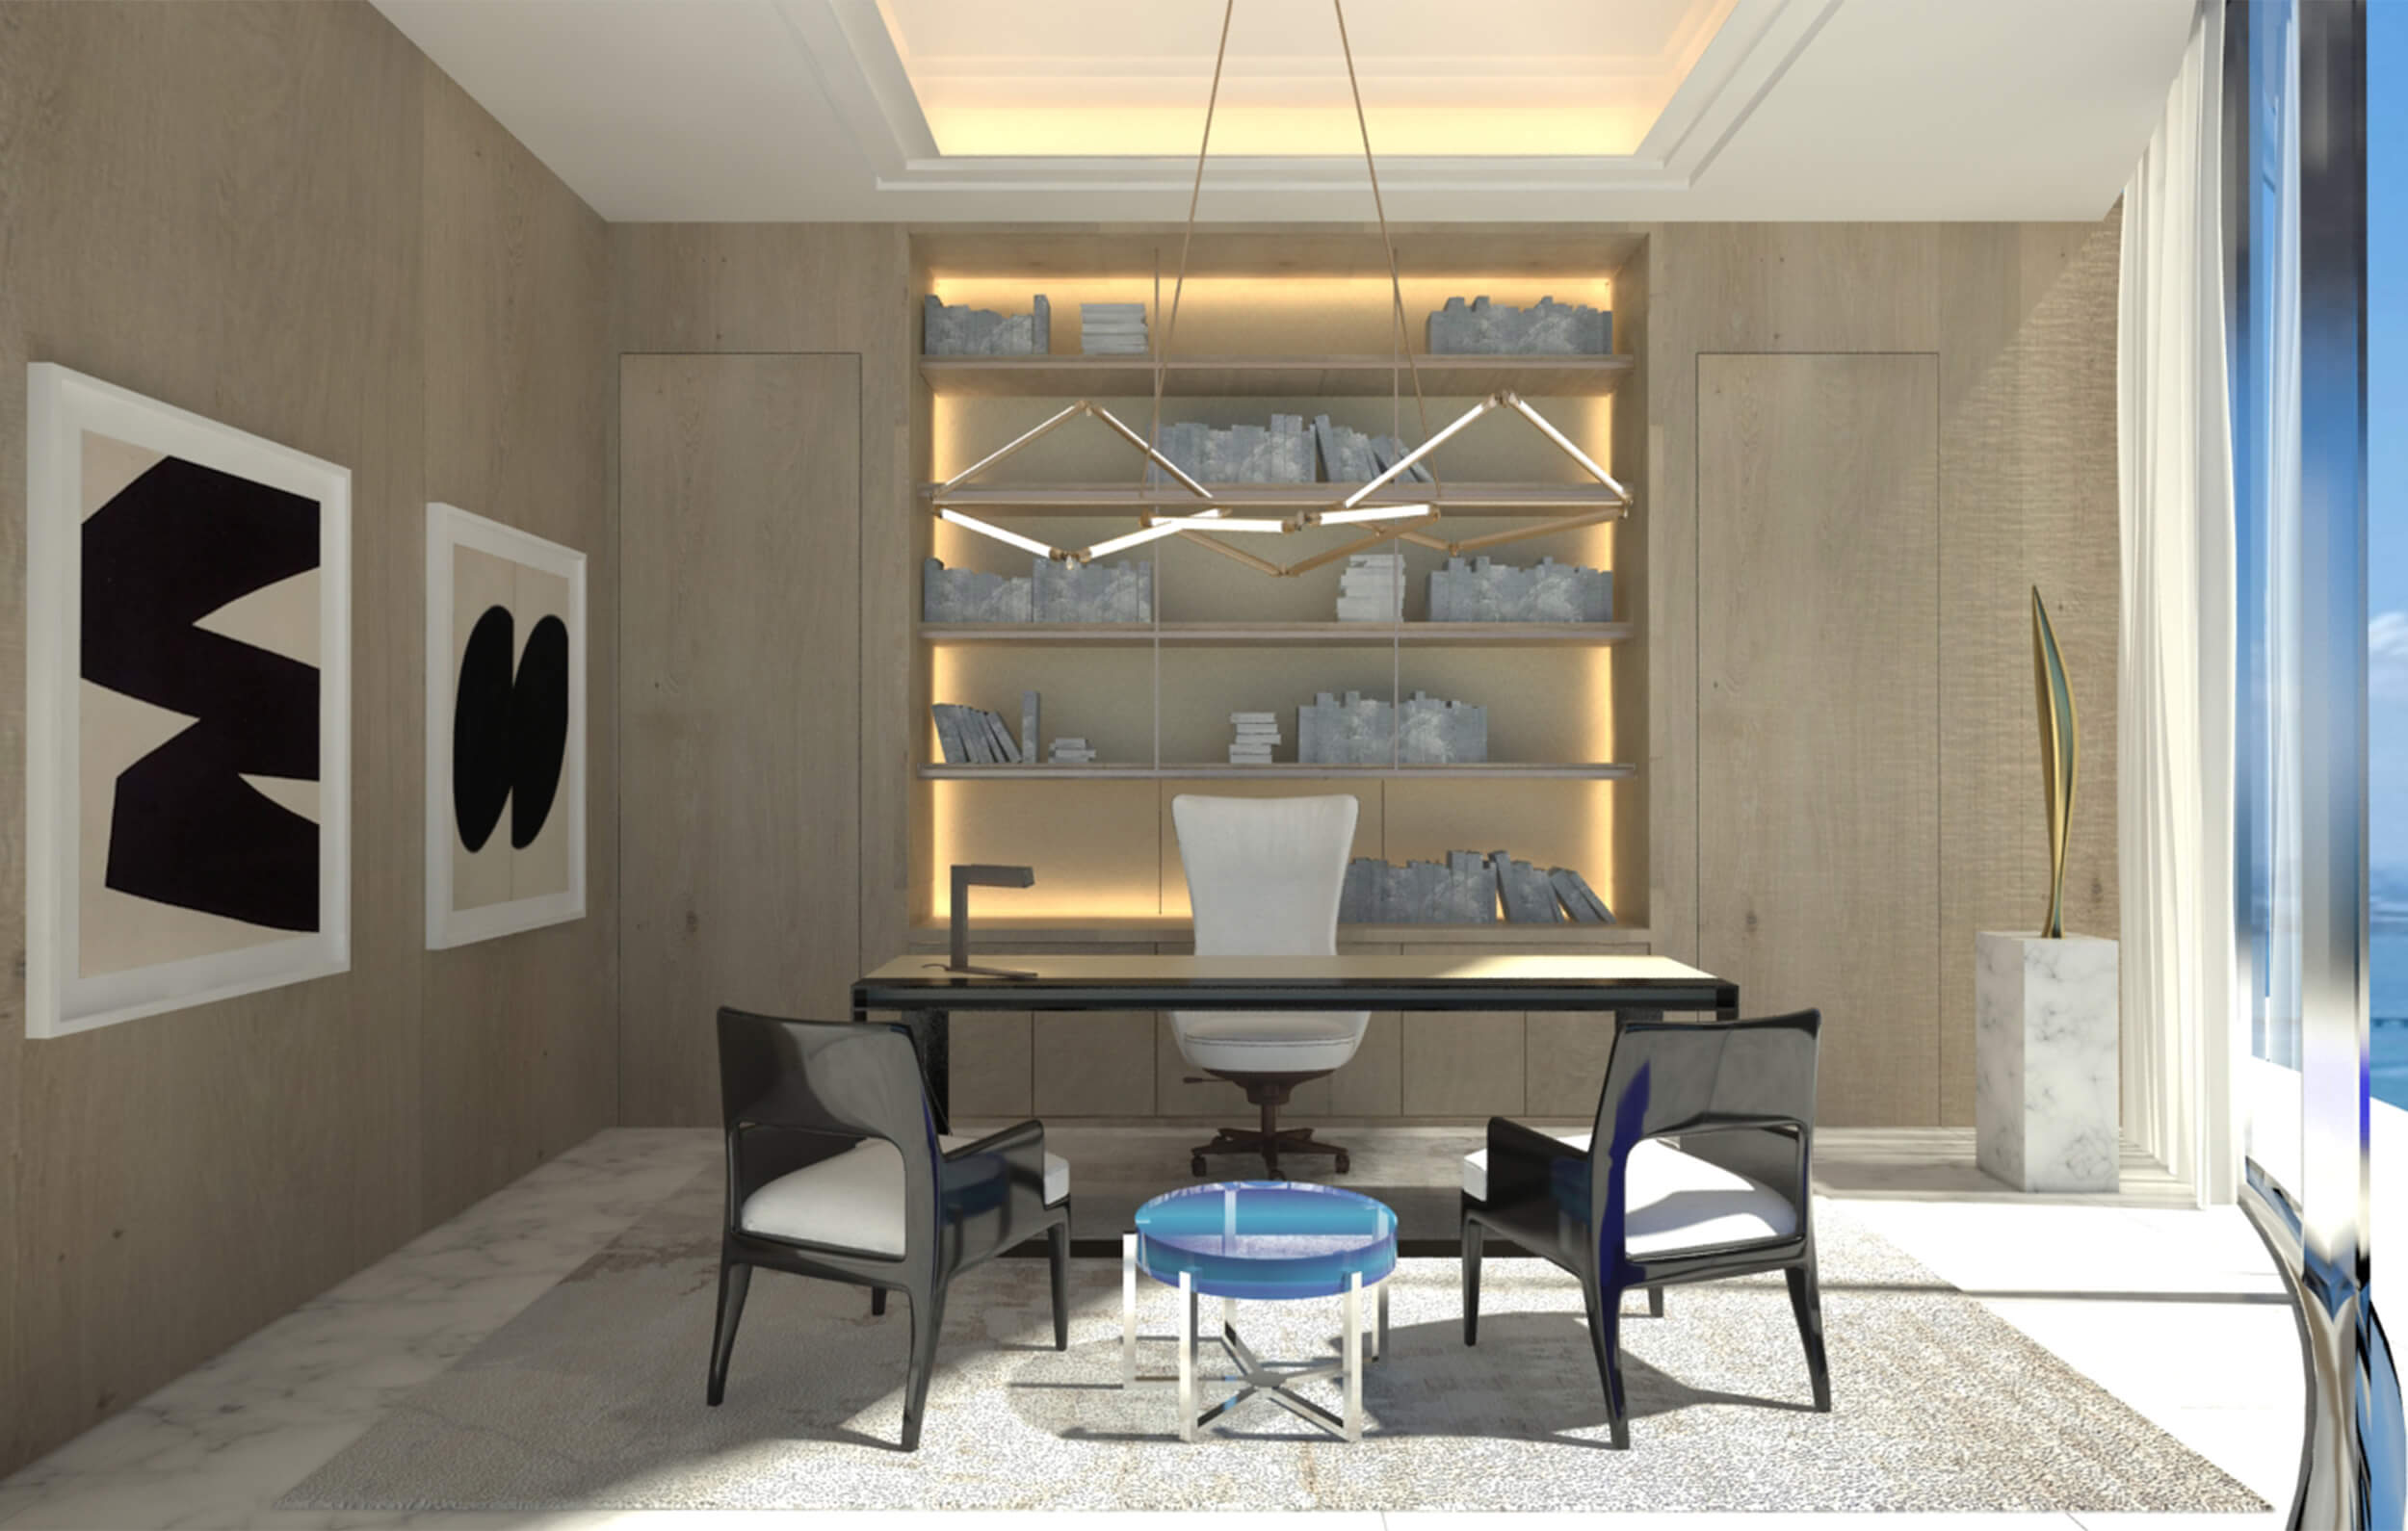 Rendering of the proposed study for our client at Ritz Carlton Residences PH in Sunny Isles Beach